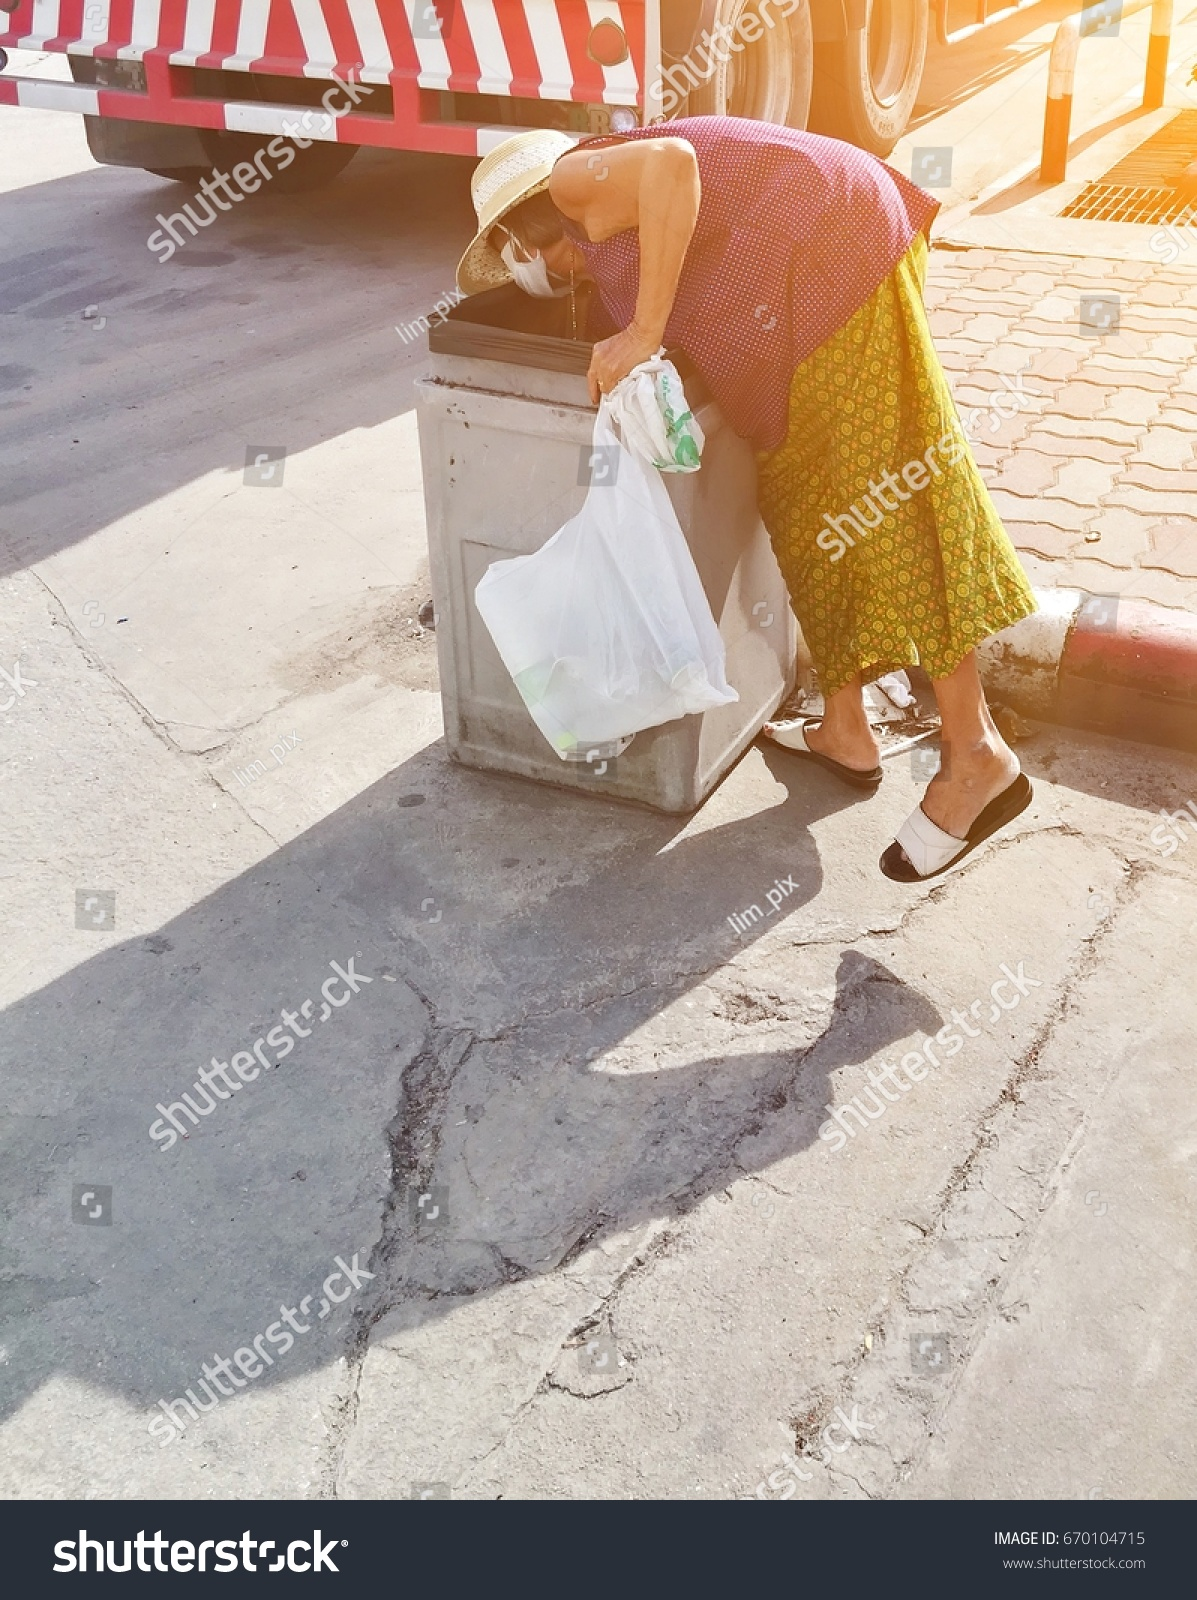 old lady collecting garbage on road stock photo 670104715 - shutterstock